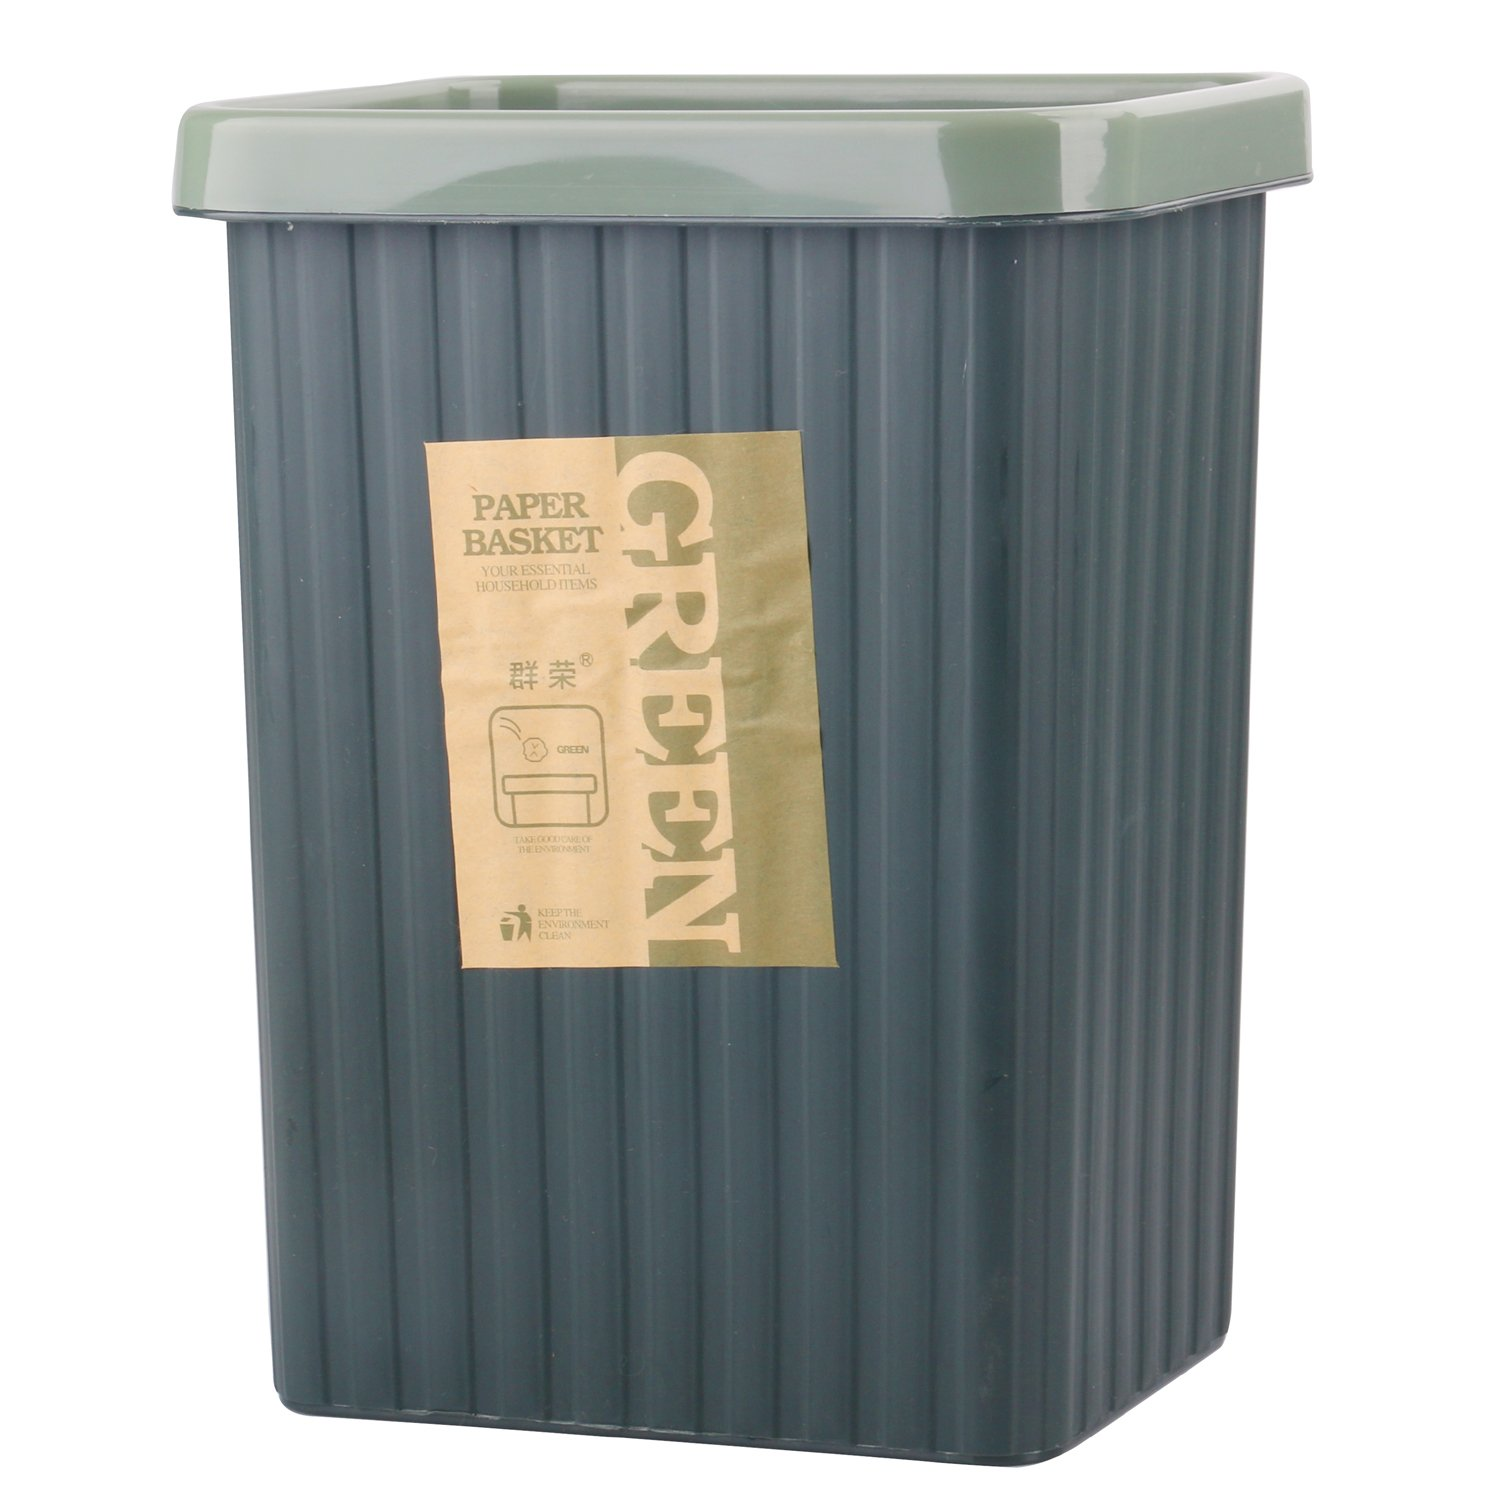 Kleanner Household Rectangle Plastic Trash Can Wastebasket For Office,Living Room,Bath Room (6L/1.2Gal Green)